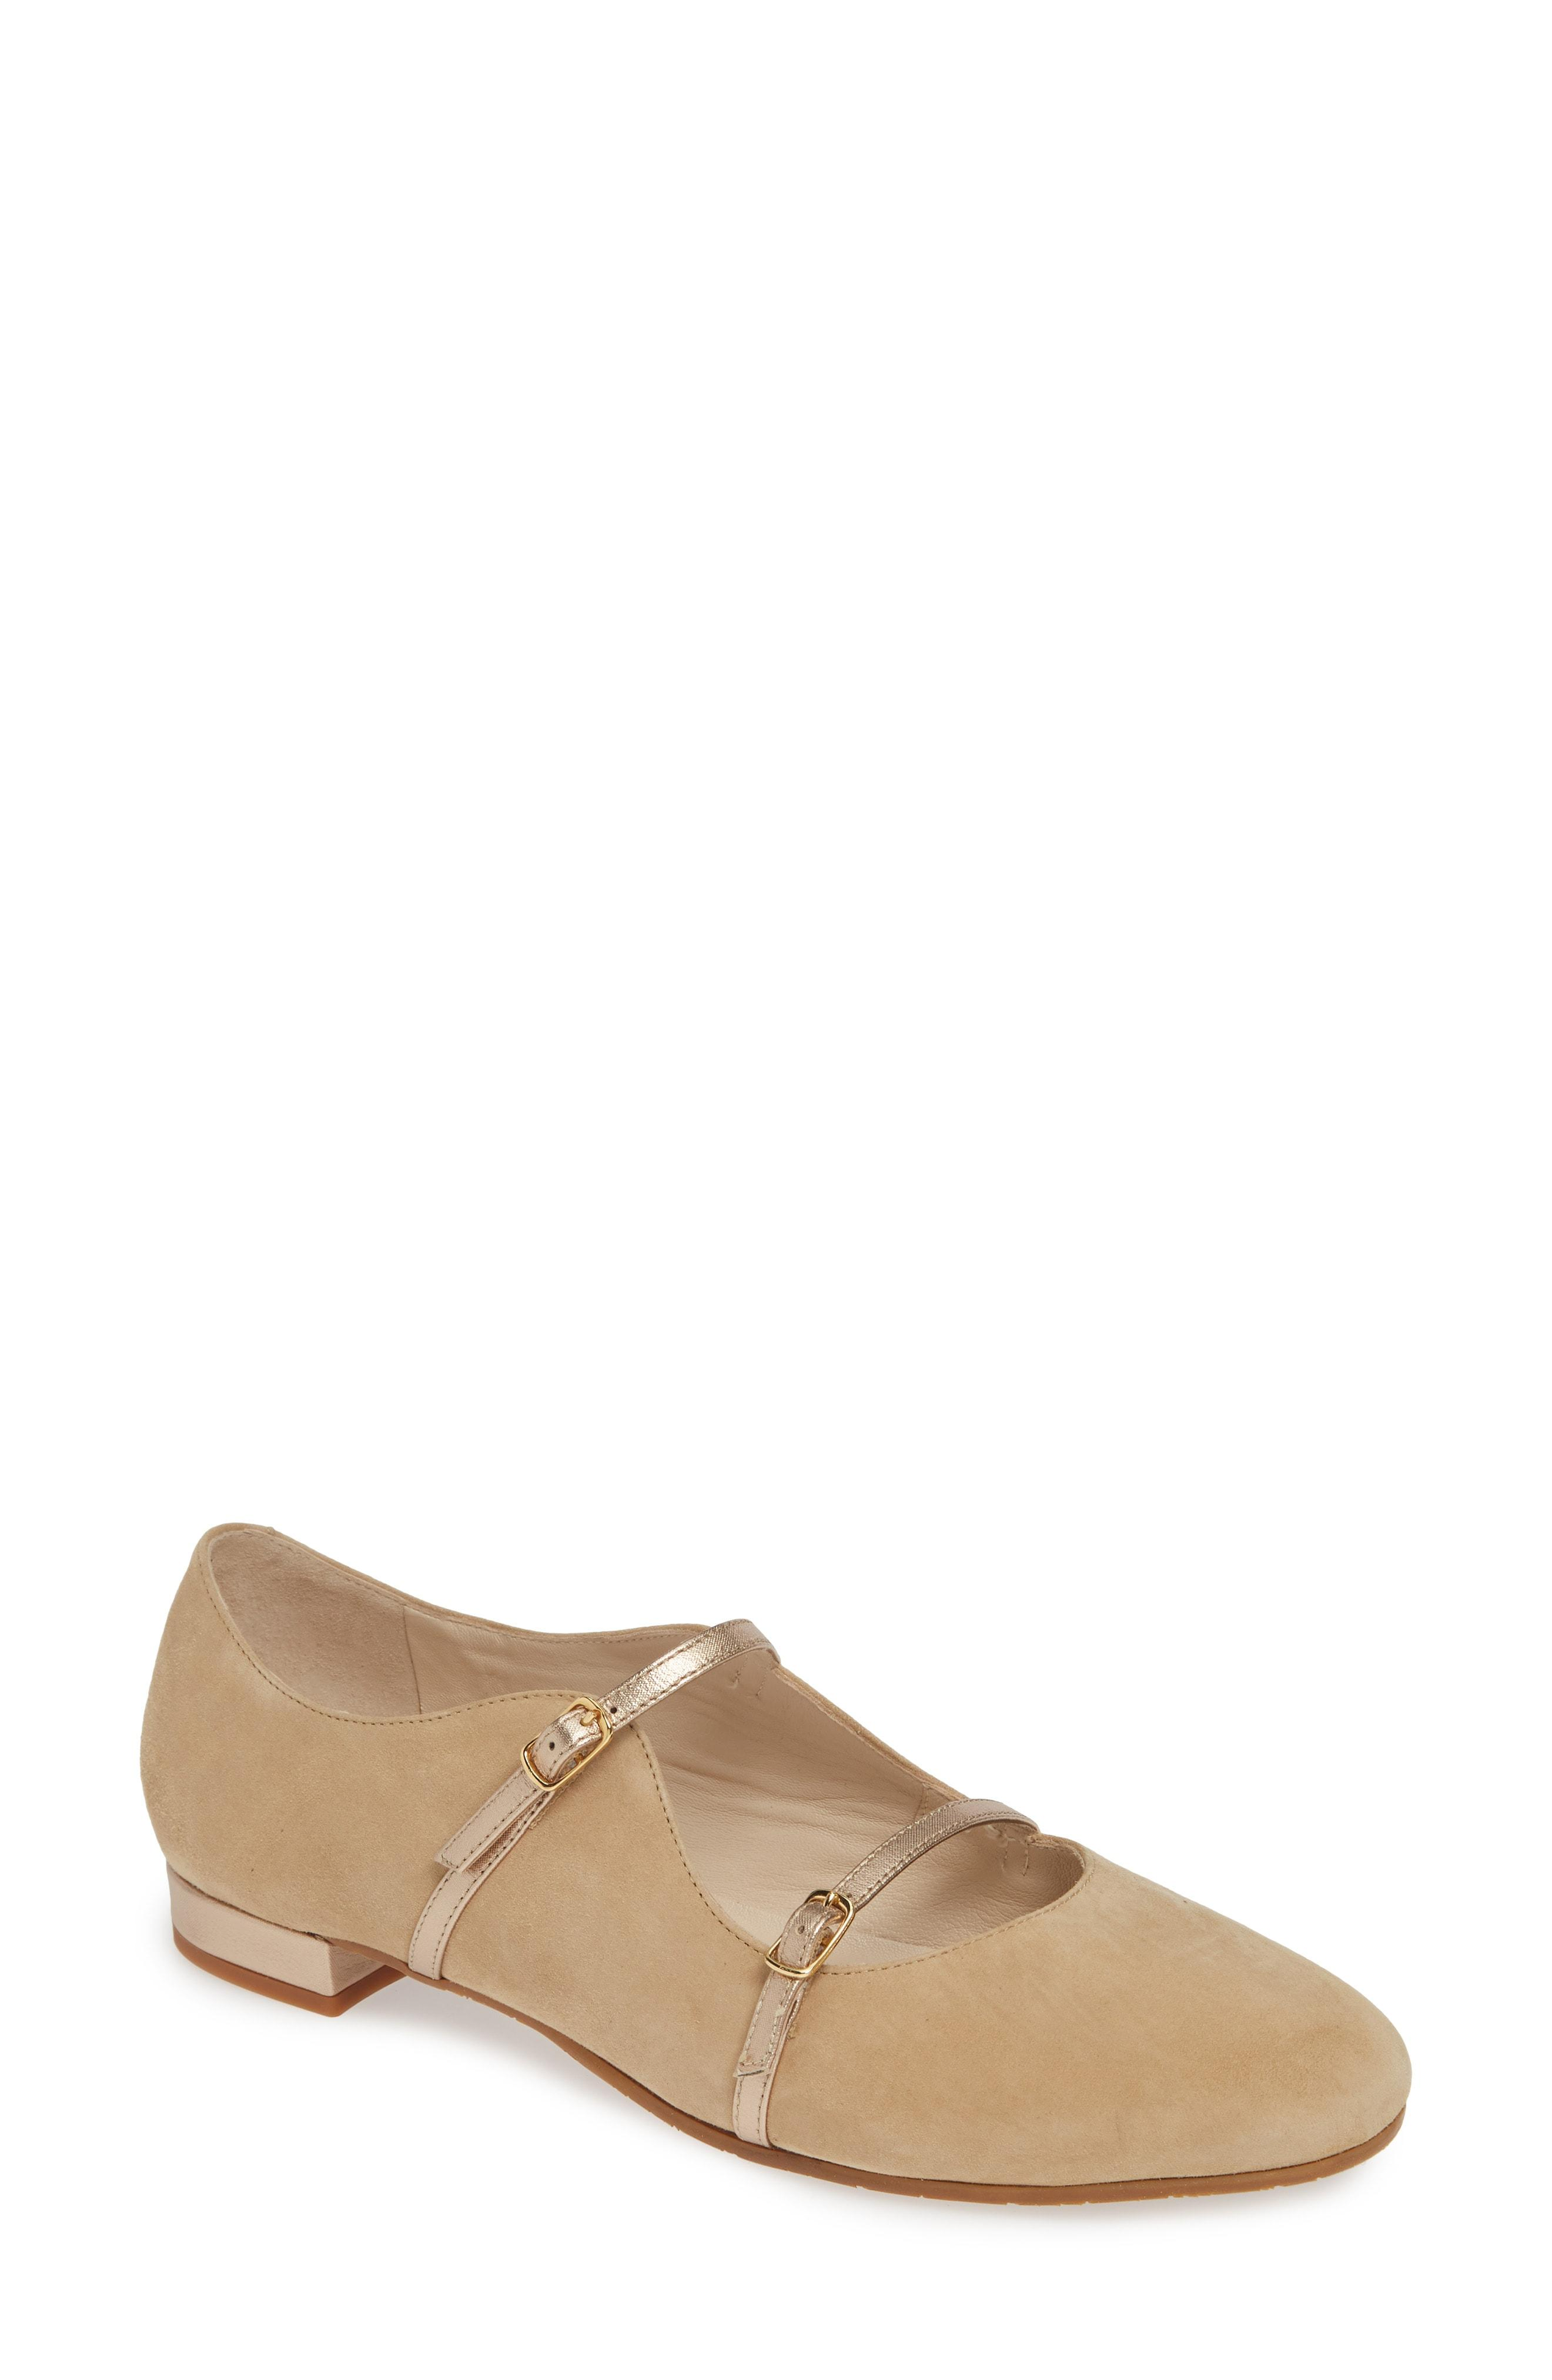 6ffaa209706 Lyst - Amalfi by Rangoni Grado Strappy Mary Jane Flat in Natural